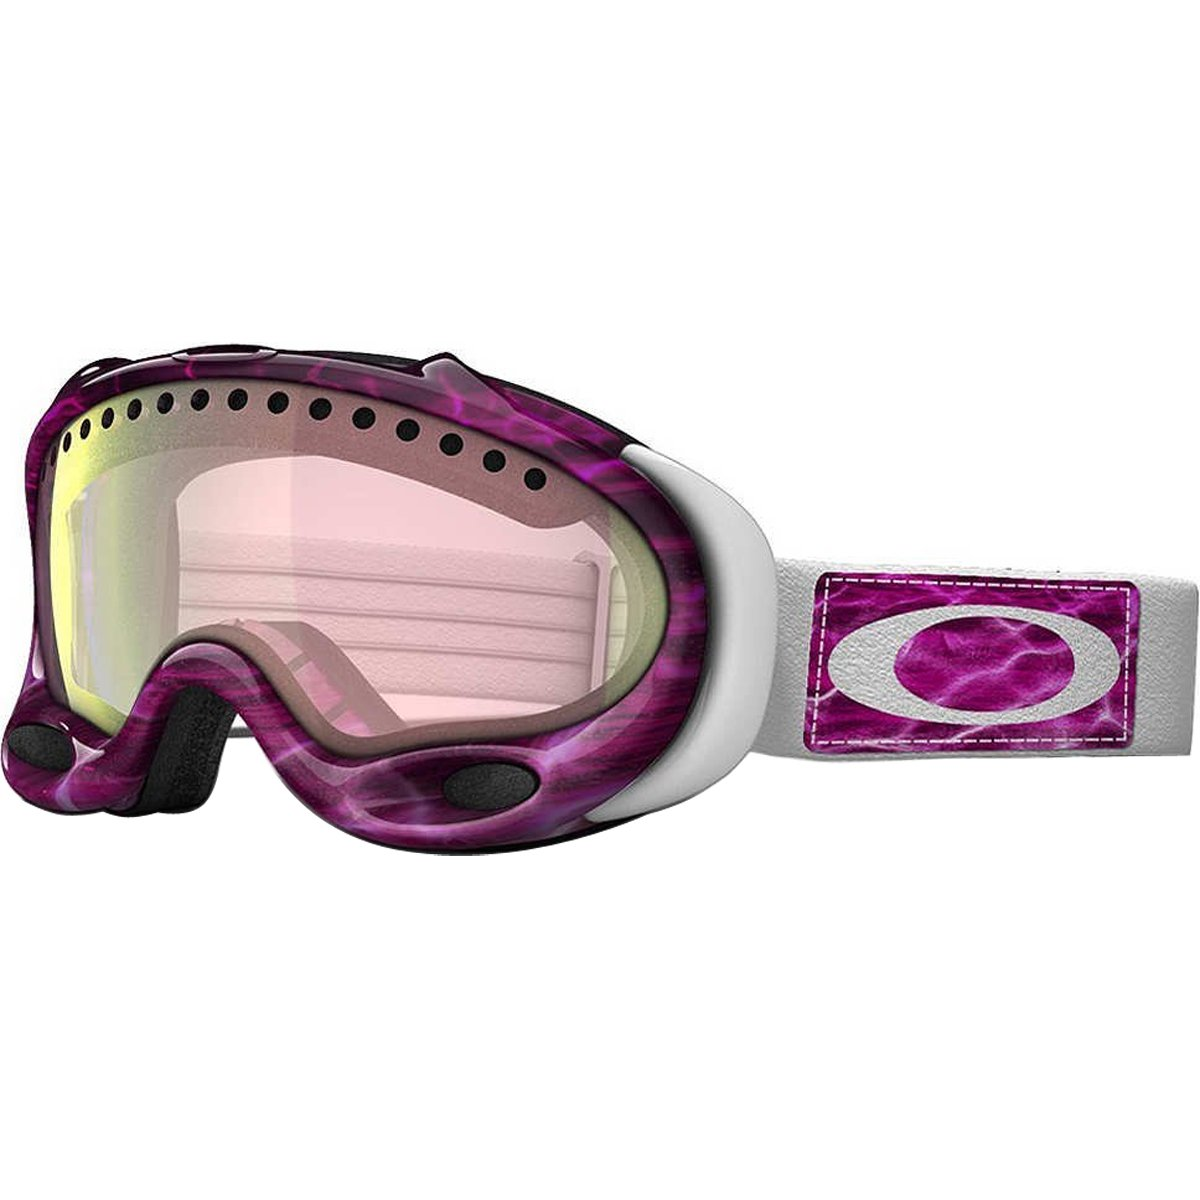 Oakley A-Frame Men's Snow Snowmobile Goggles Eyewear - Grape Wine/VR28 / One Size Fits All